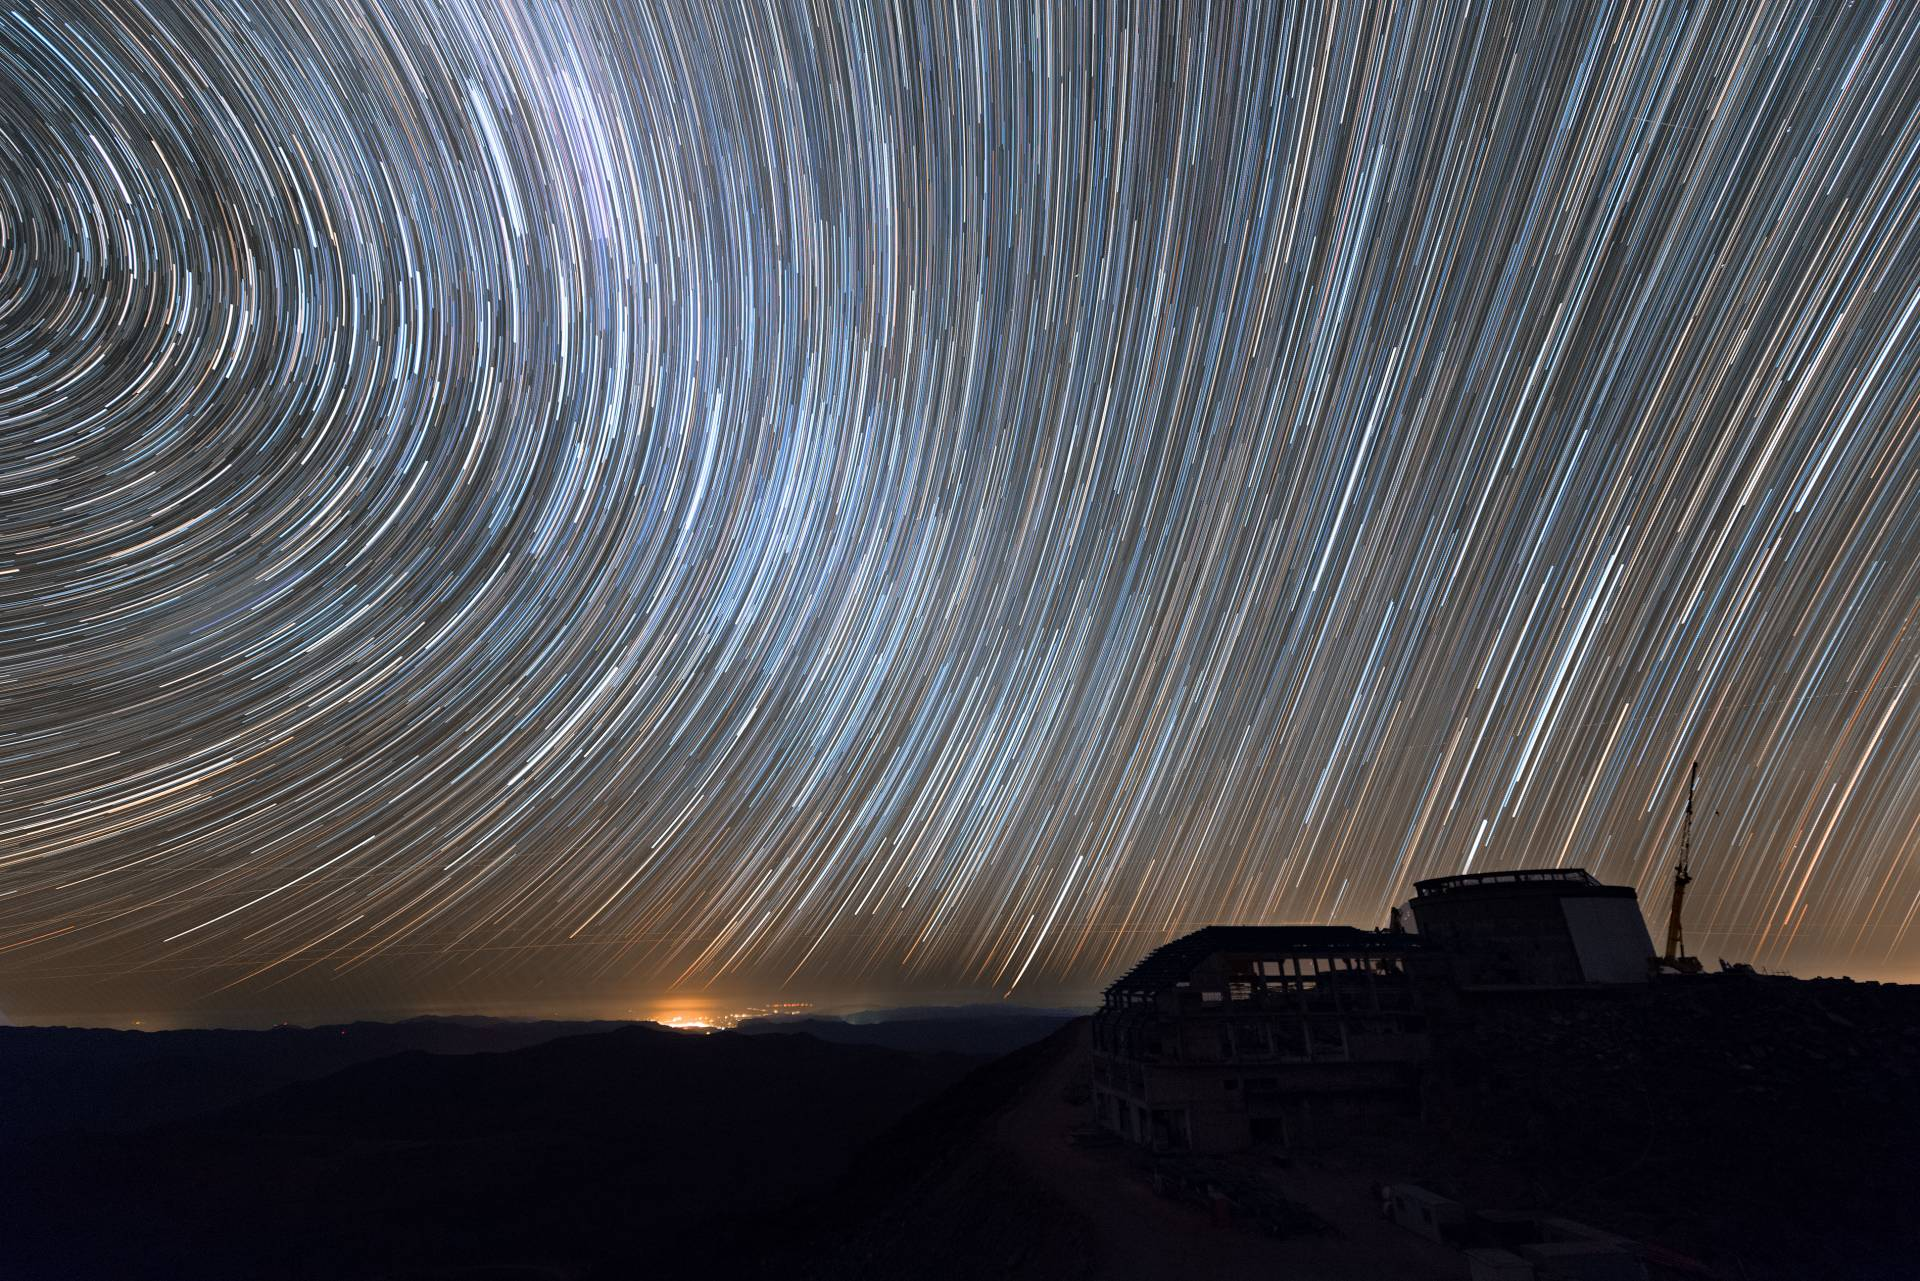 Long exposure photo of night sky